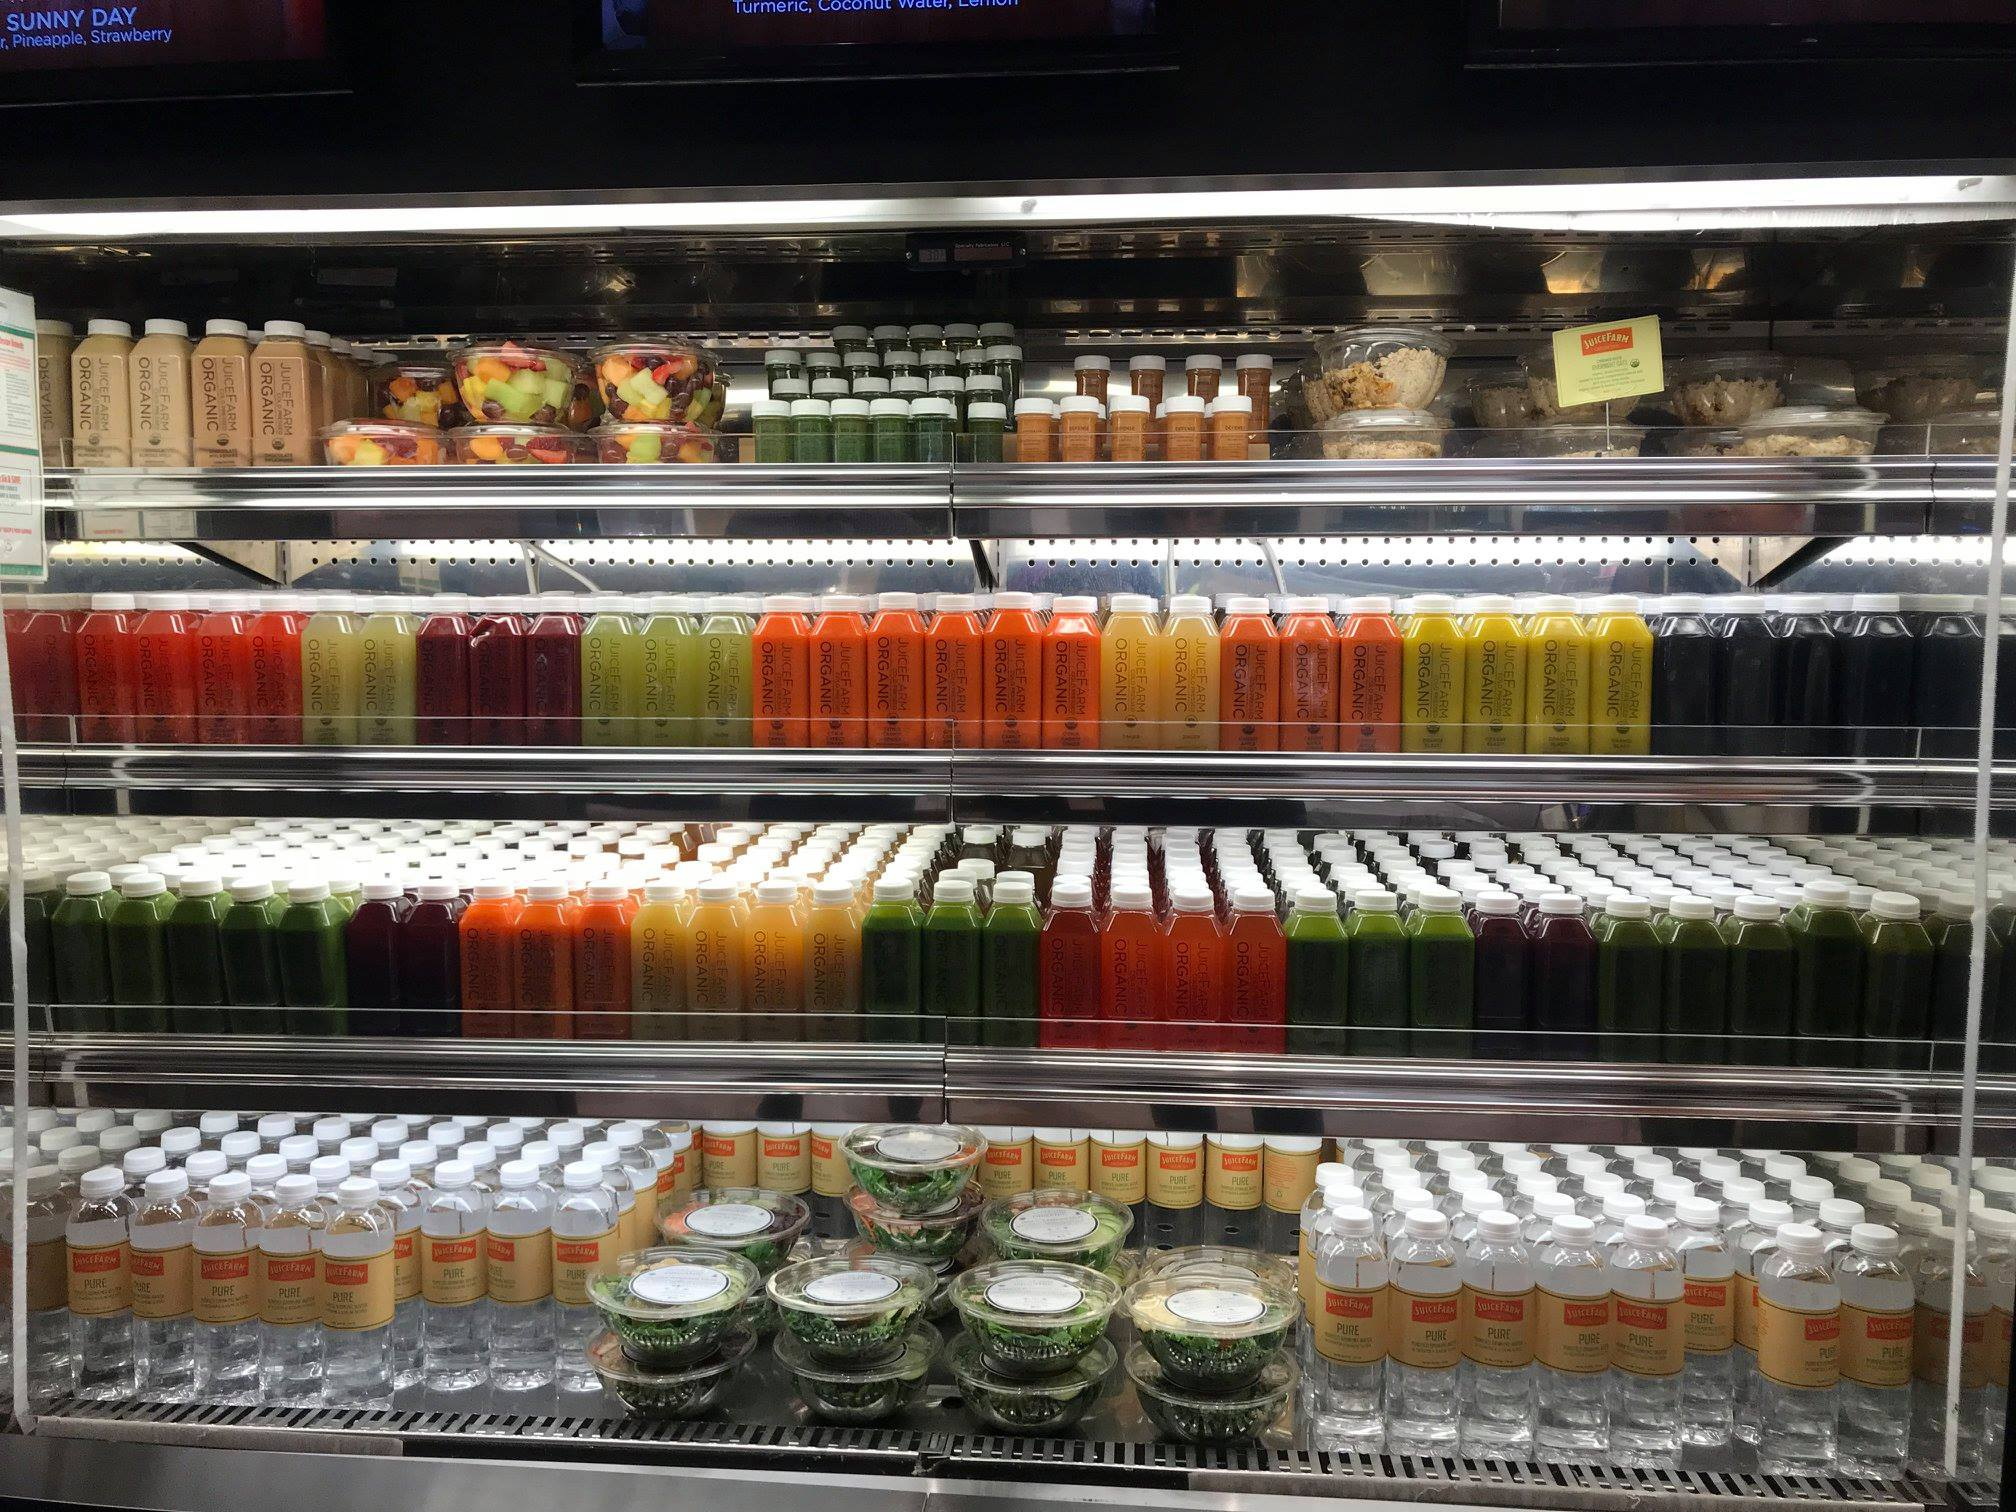 A fridge full of juices and salads